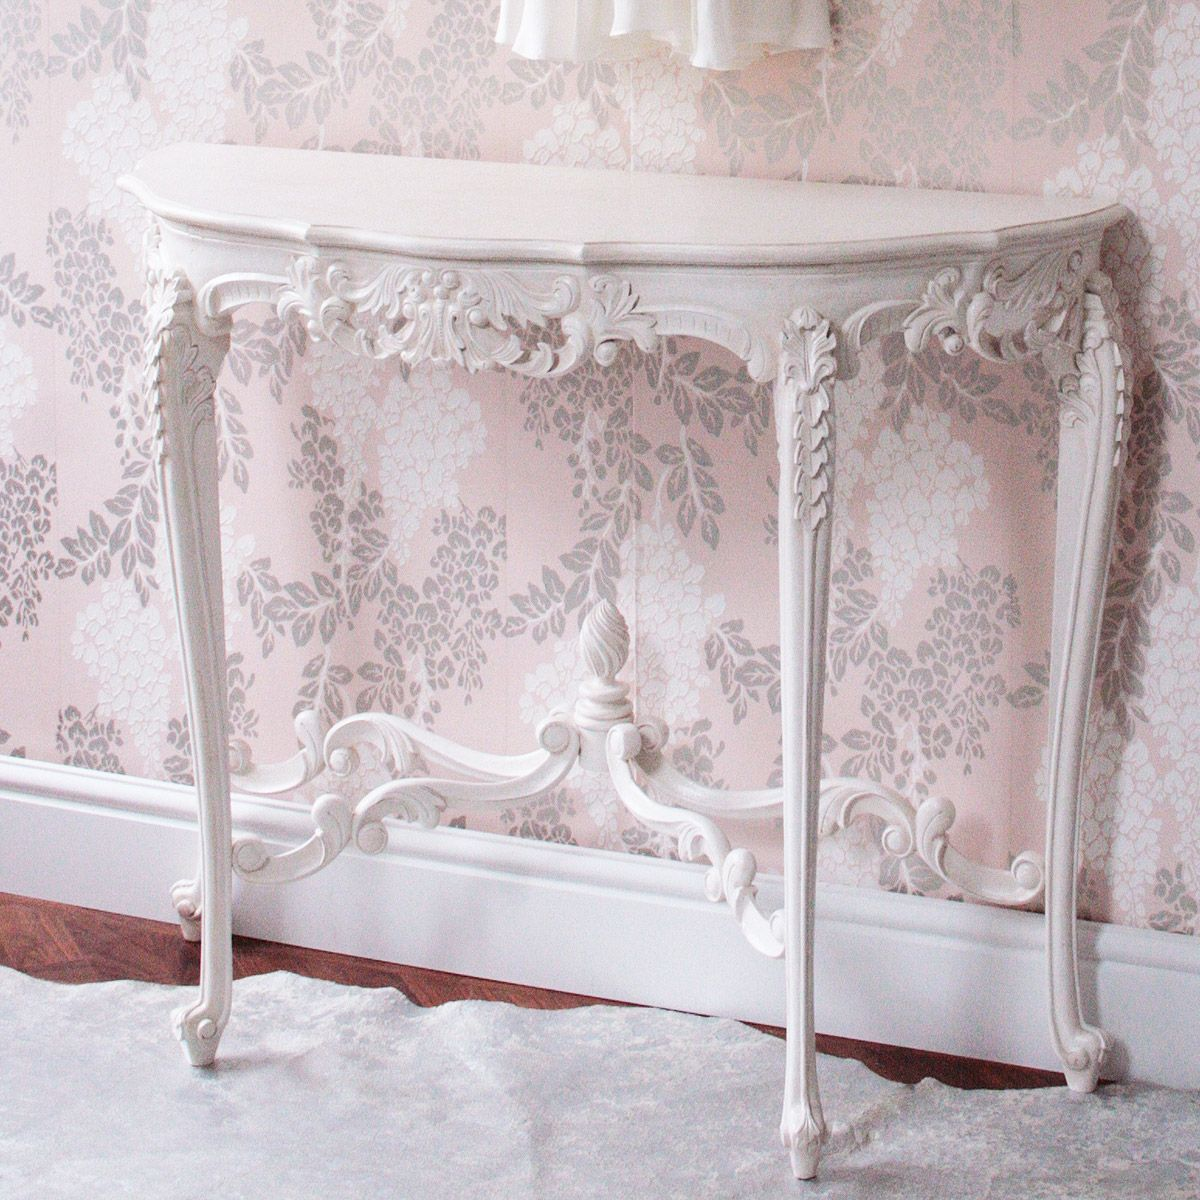 Provencal Bedroom Furniture Provencal Marie Antoinette White Console Table French Bedrooms